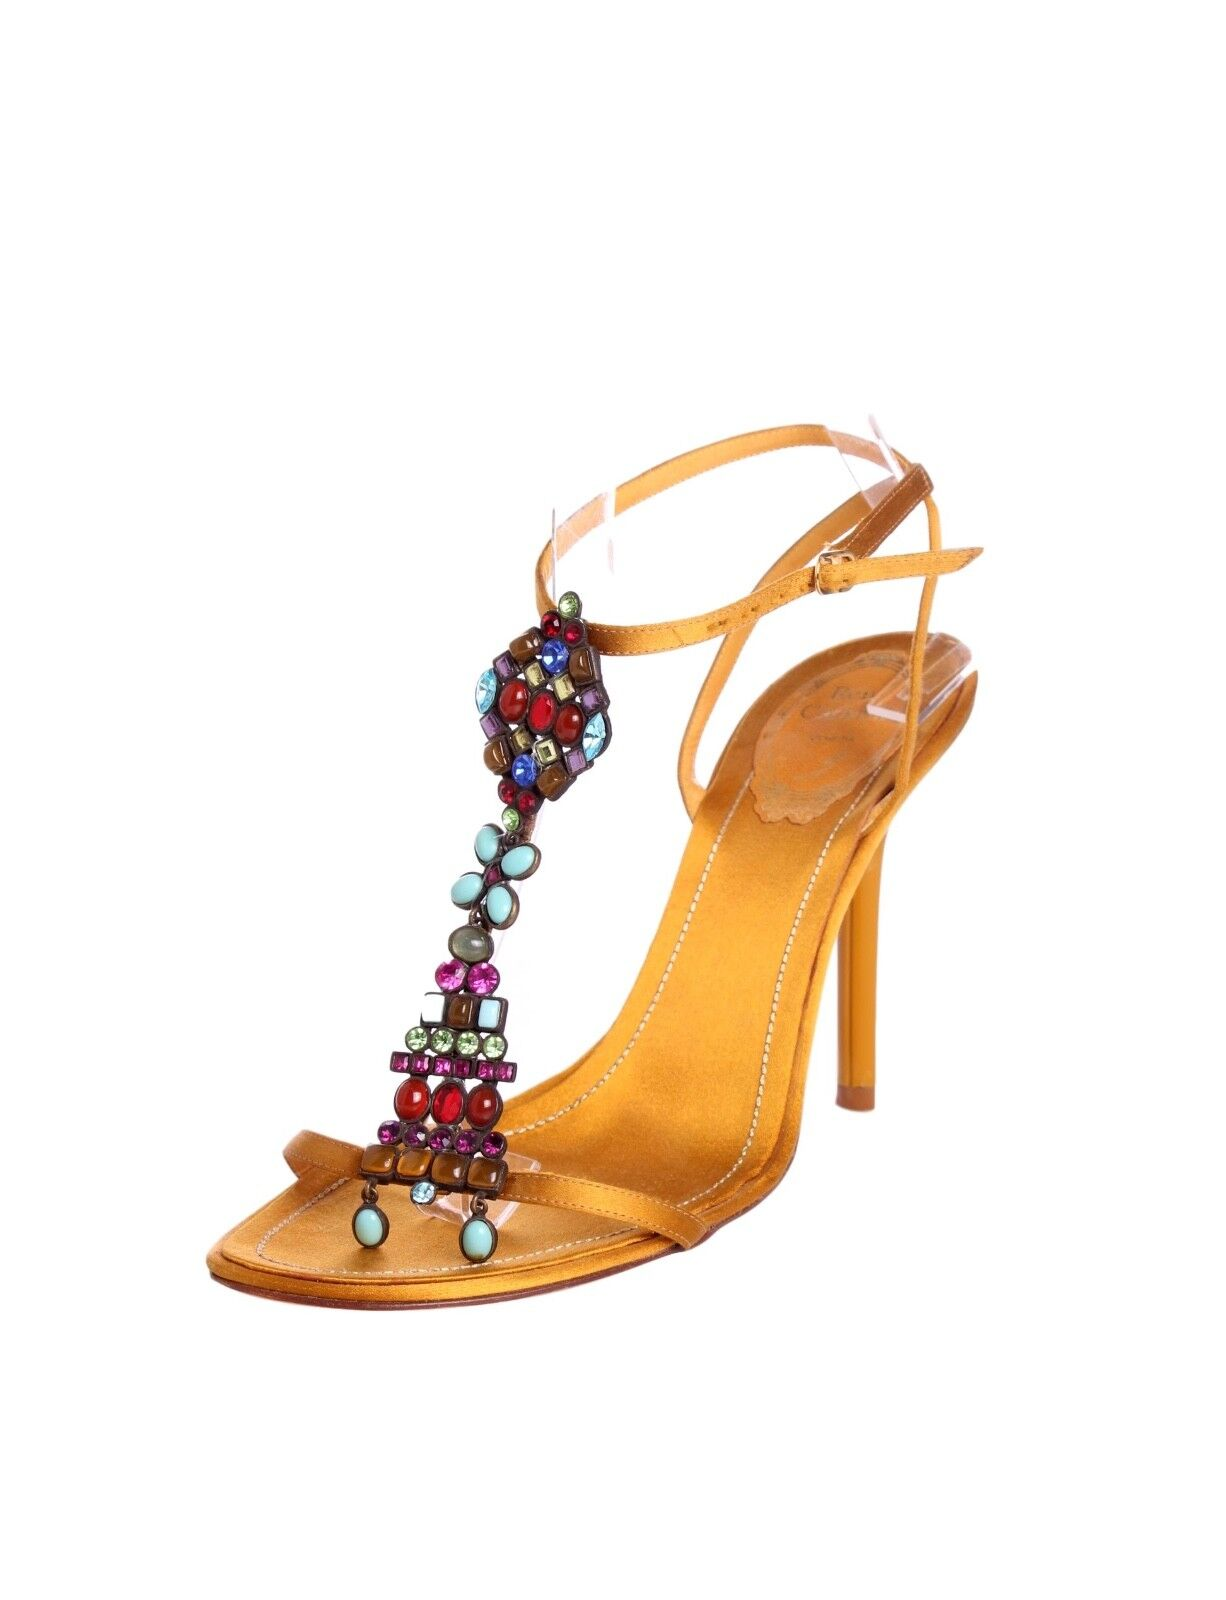 RENE CAOVILLA Gold Satin Sandals Multi Crystal Gem Embellished T-Strap - US 8.5